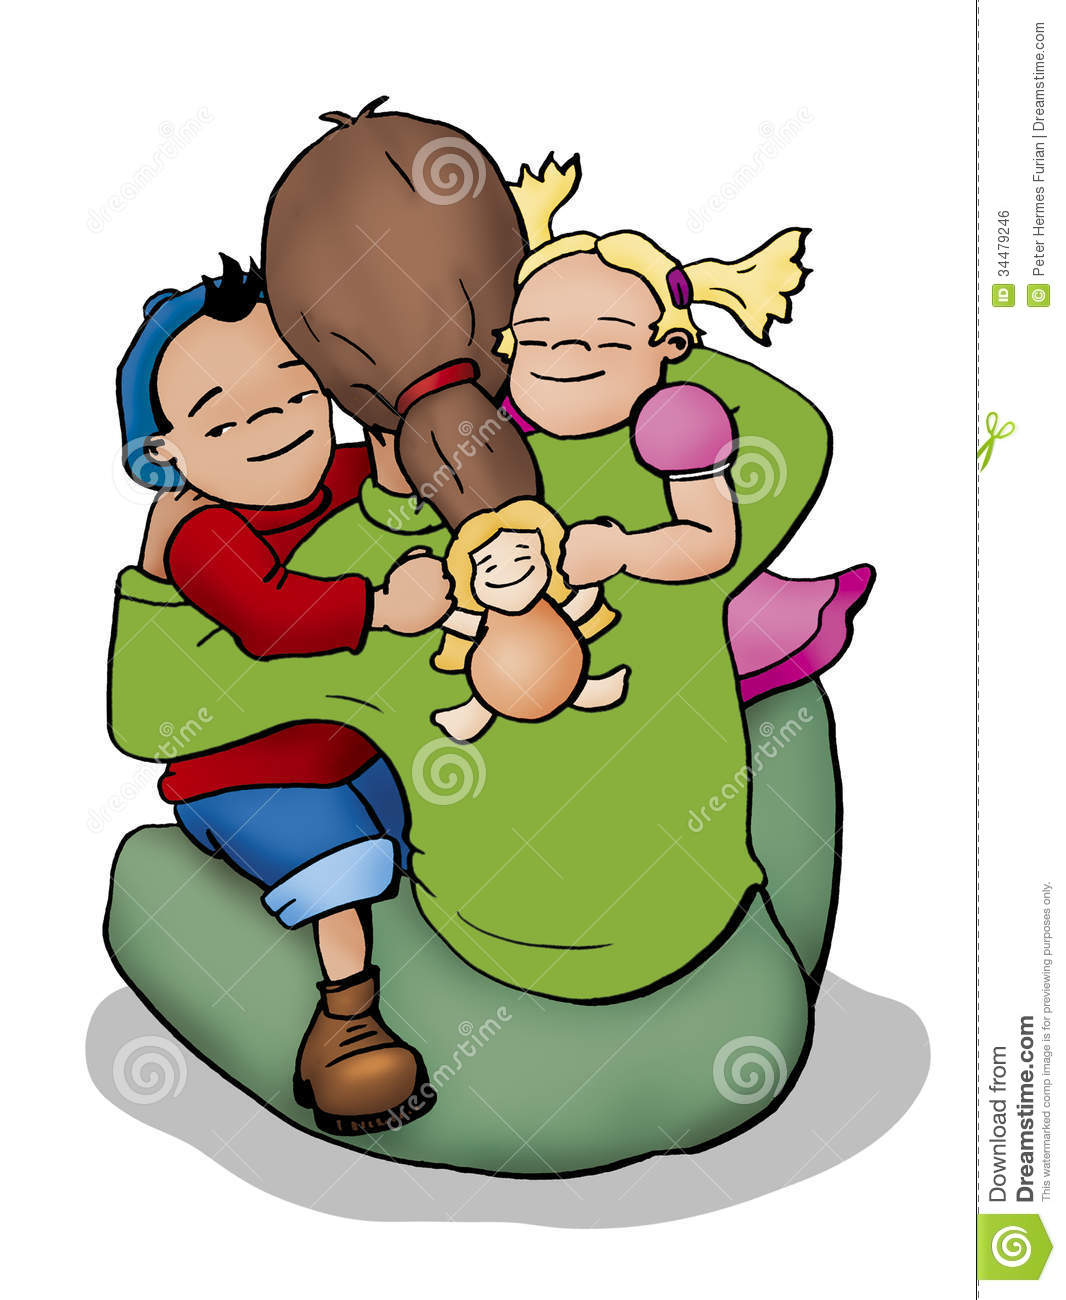 People cuddling clipart.